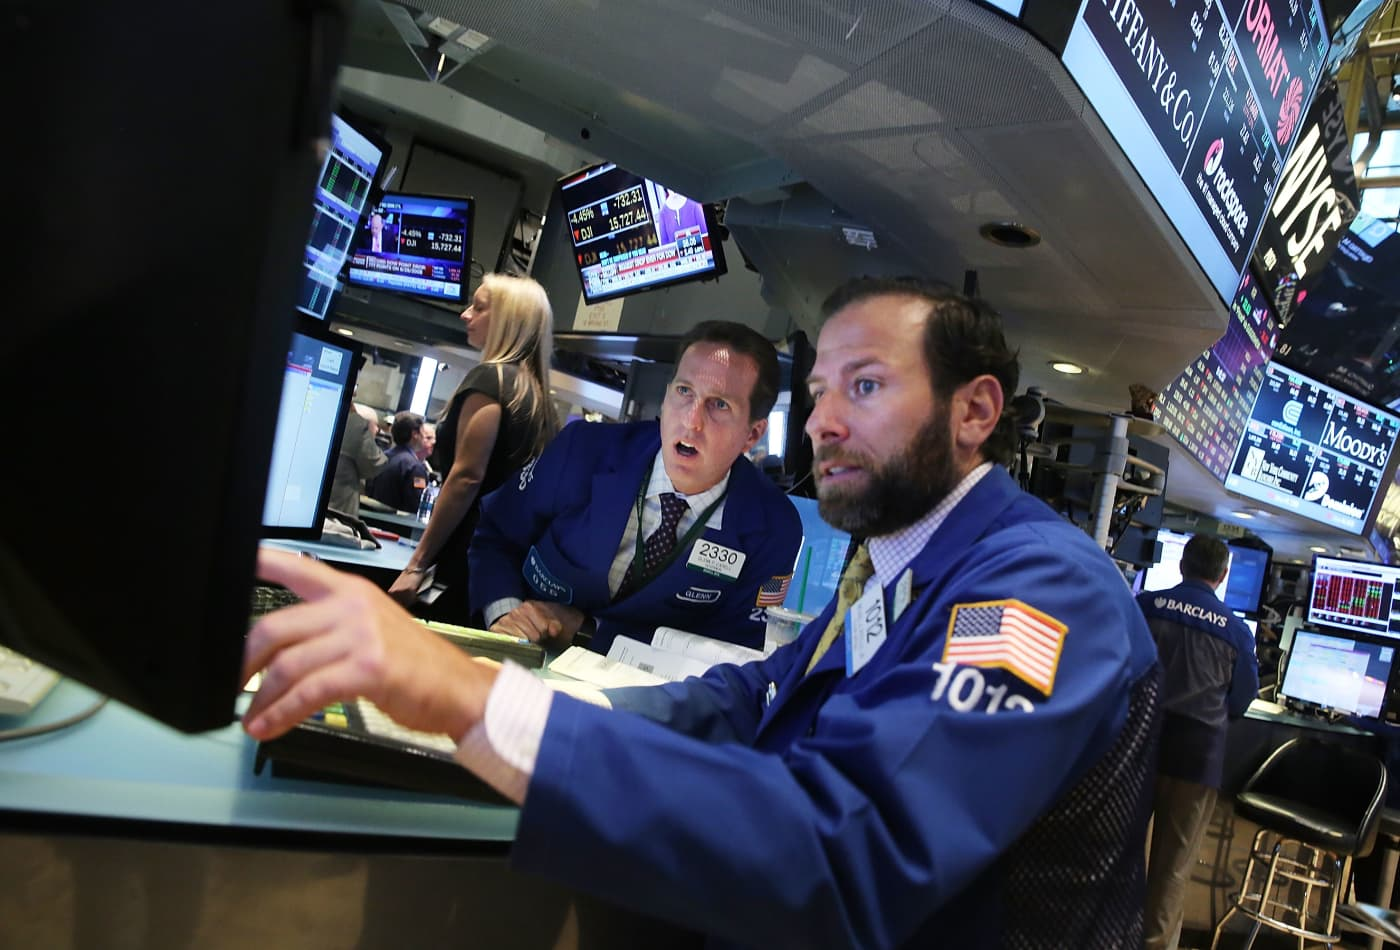 Jim Cramer on planning for a market rebound from the sell-off: 'Take something off the table'